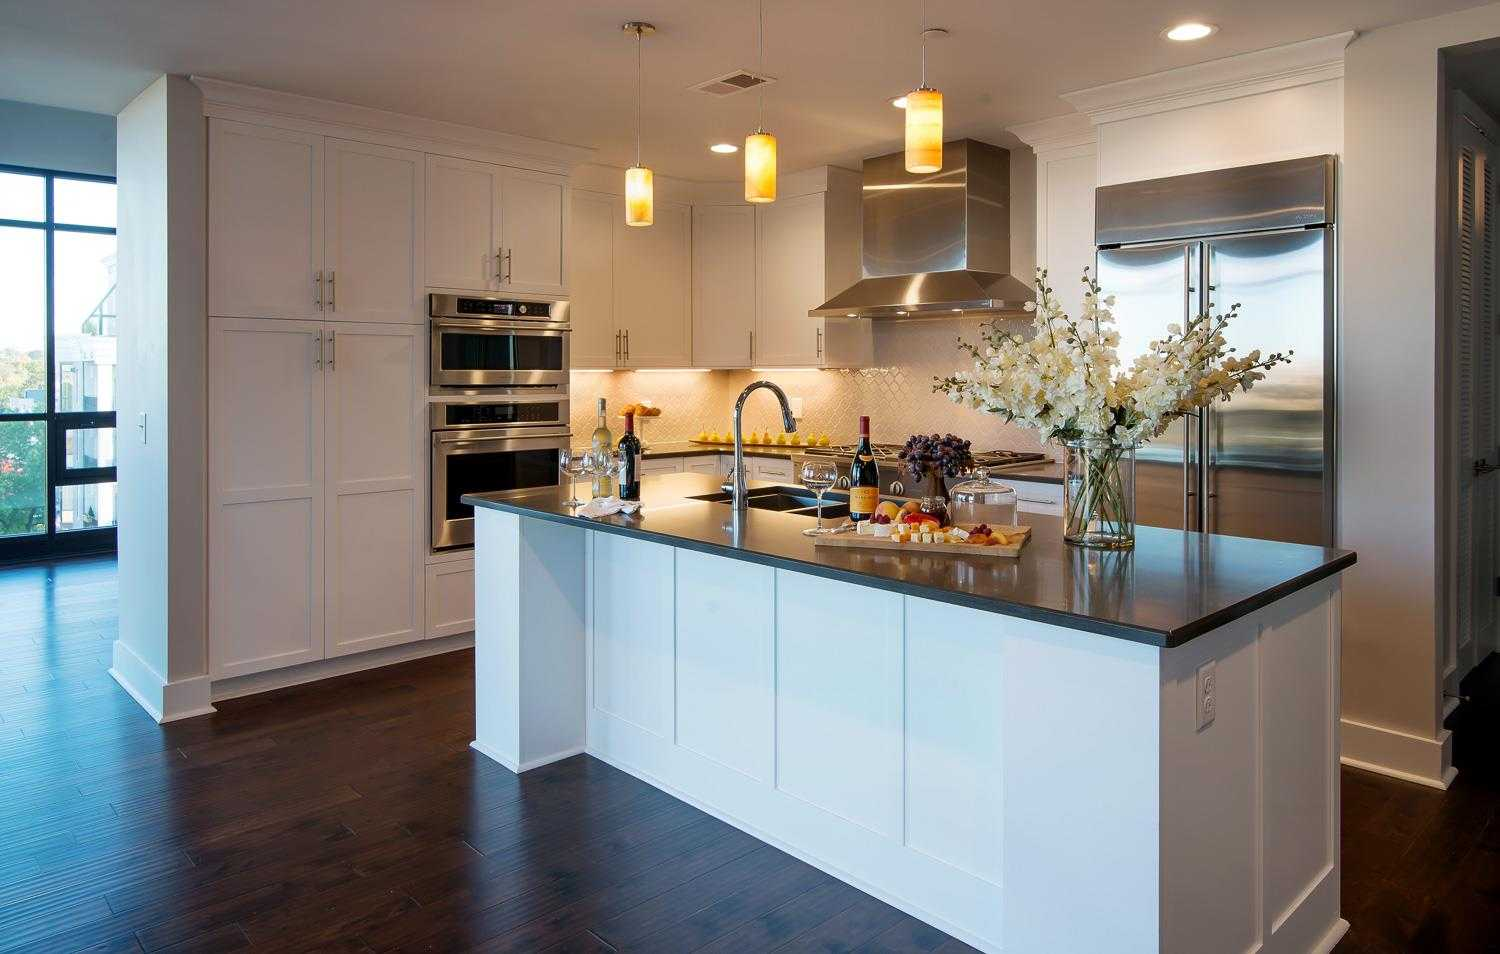 $1,999,000 - 3Br/4Ba -  for Sale in The Poston At The Park, Nashville